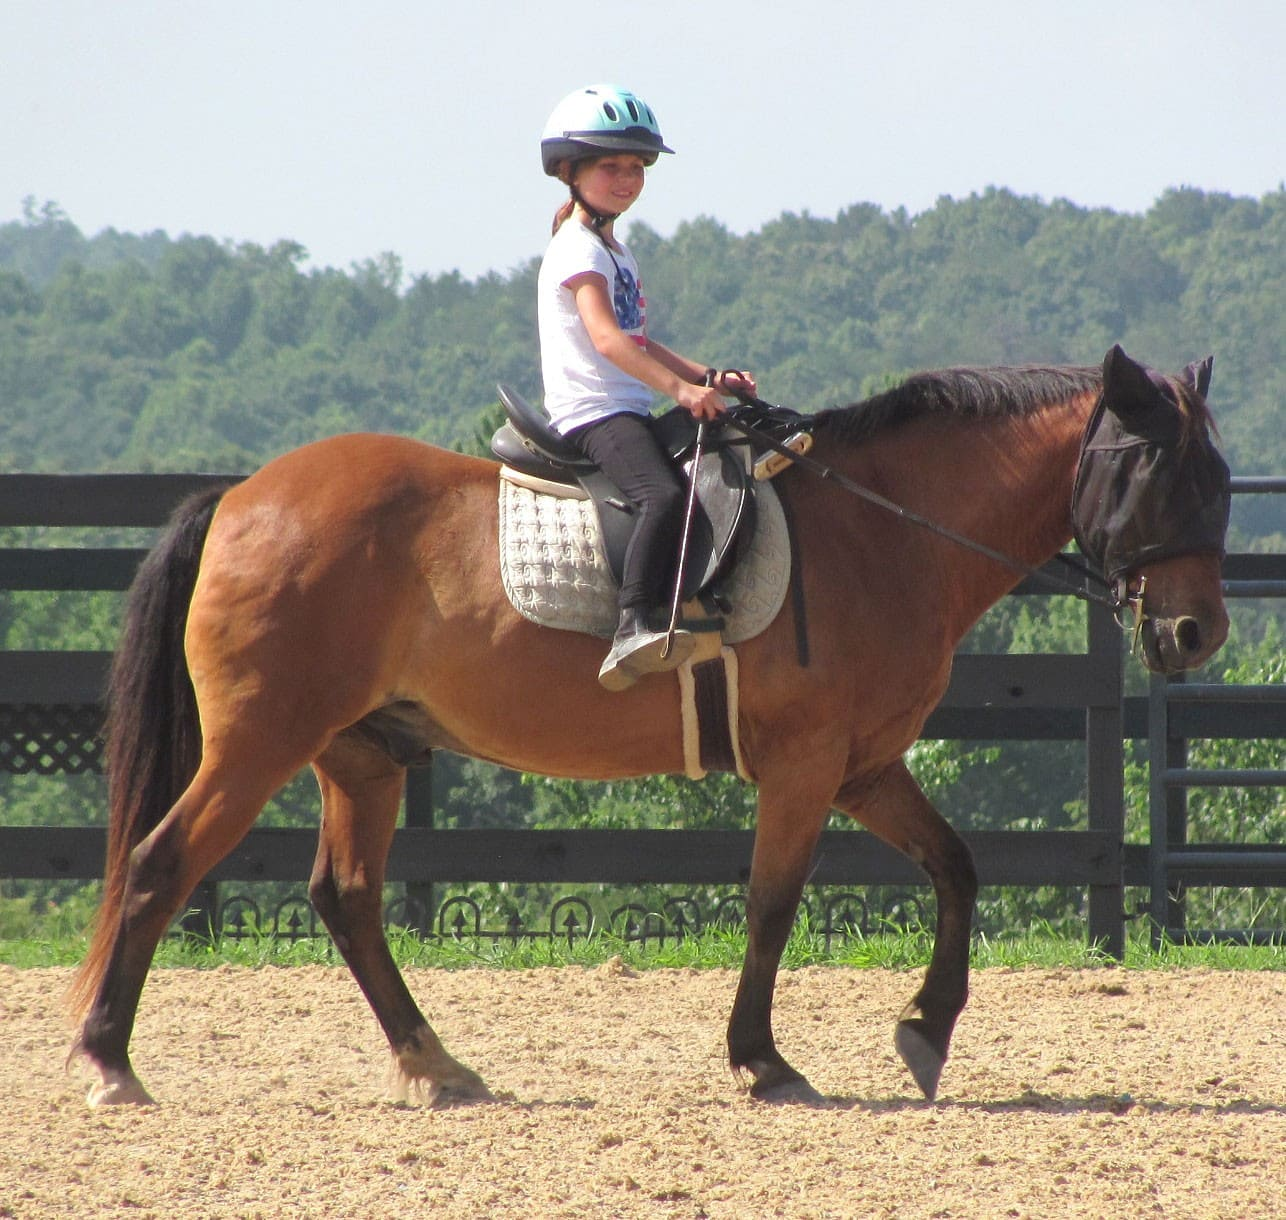 walk lesson for student and pony with no stirrups